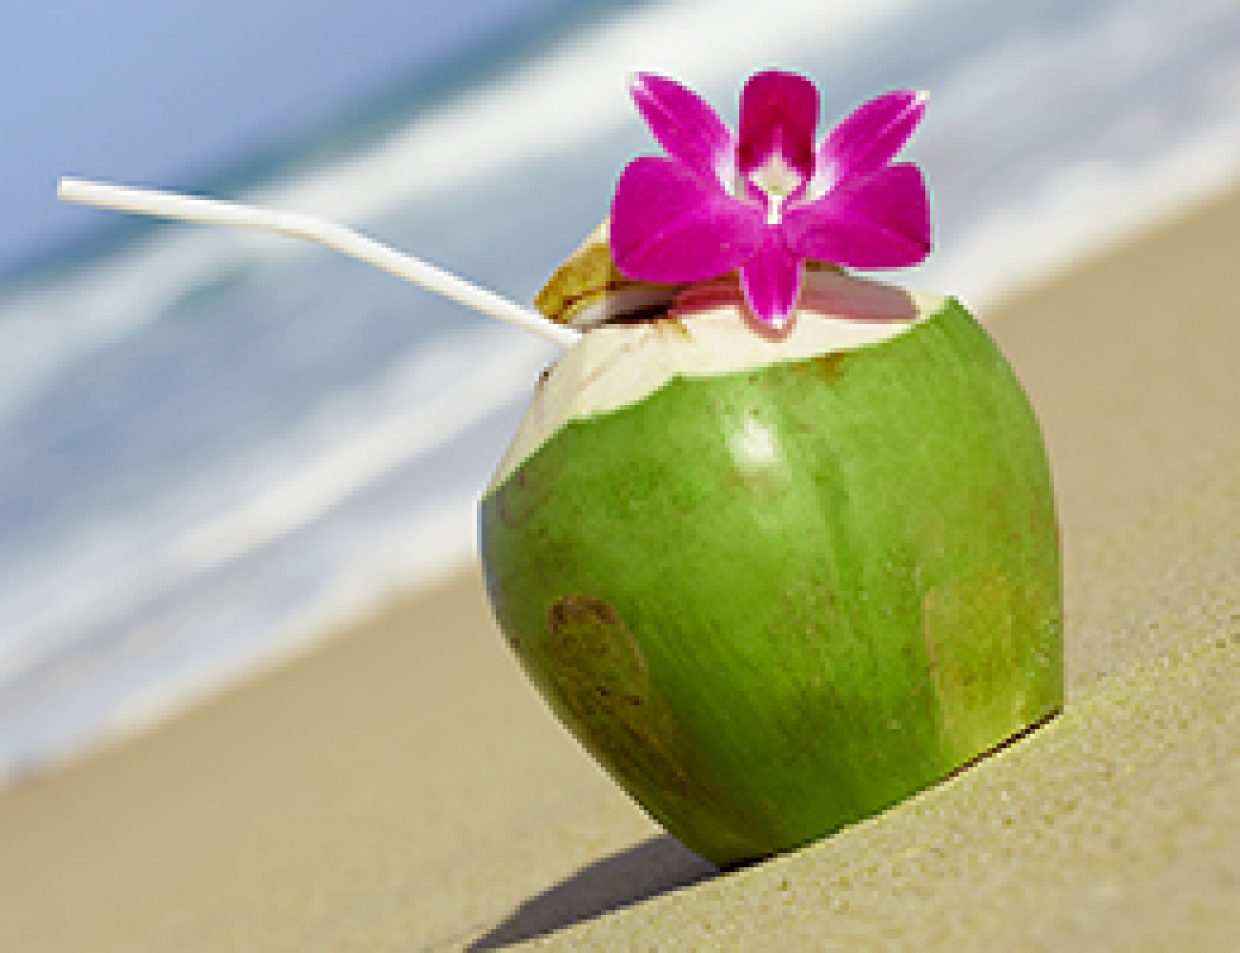 Rehydrate with coconut water